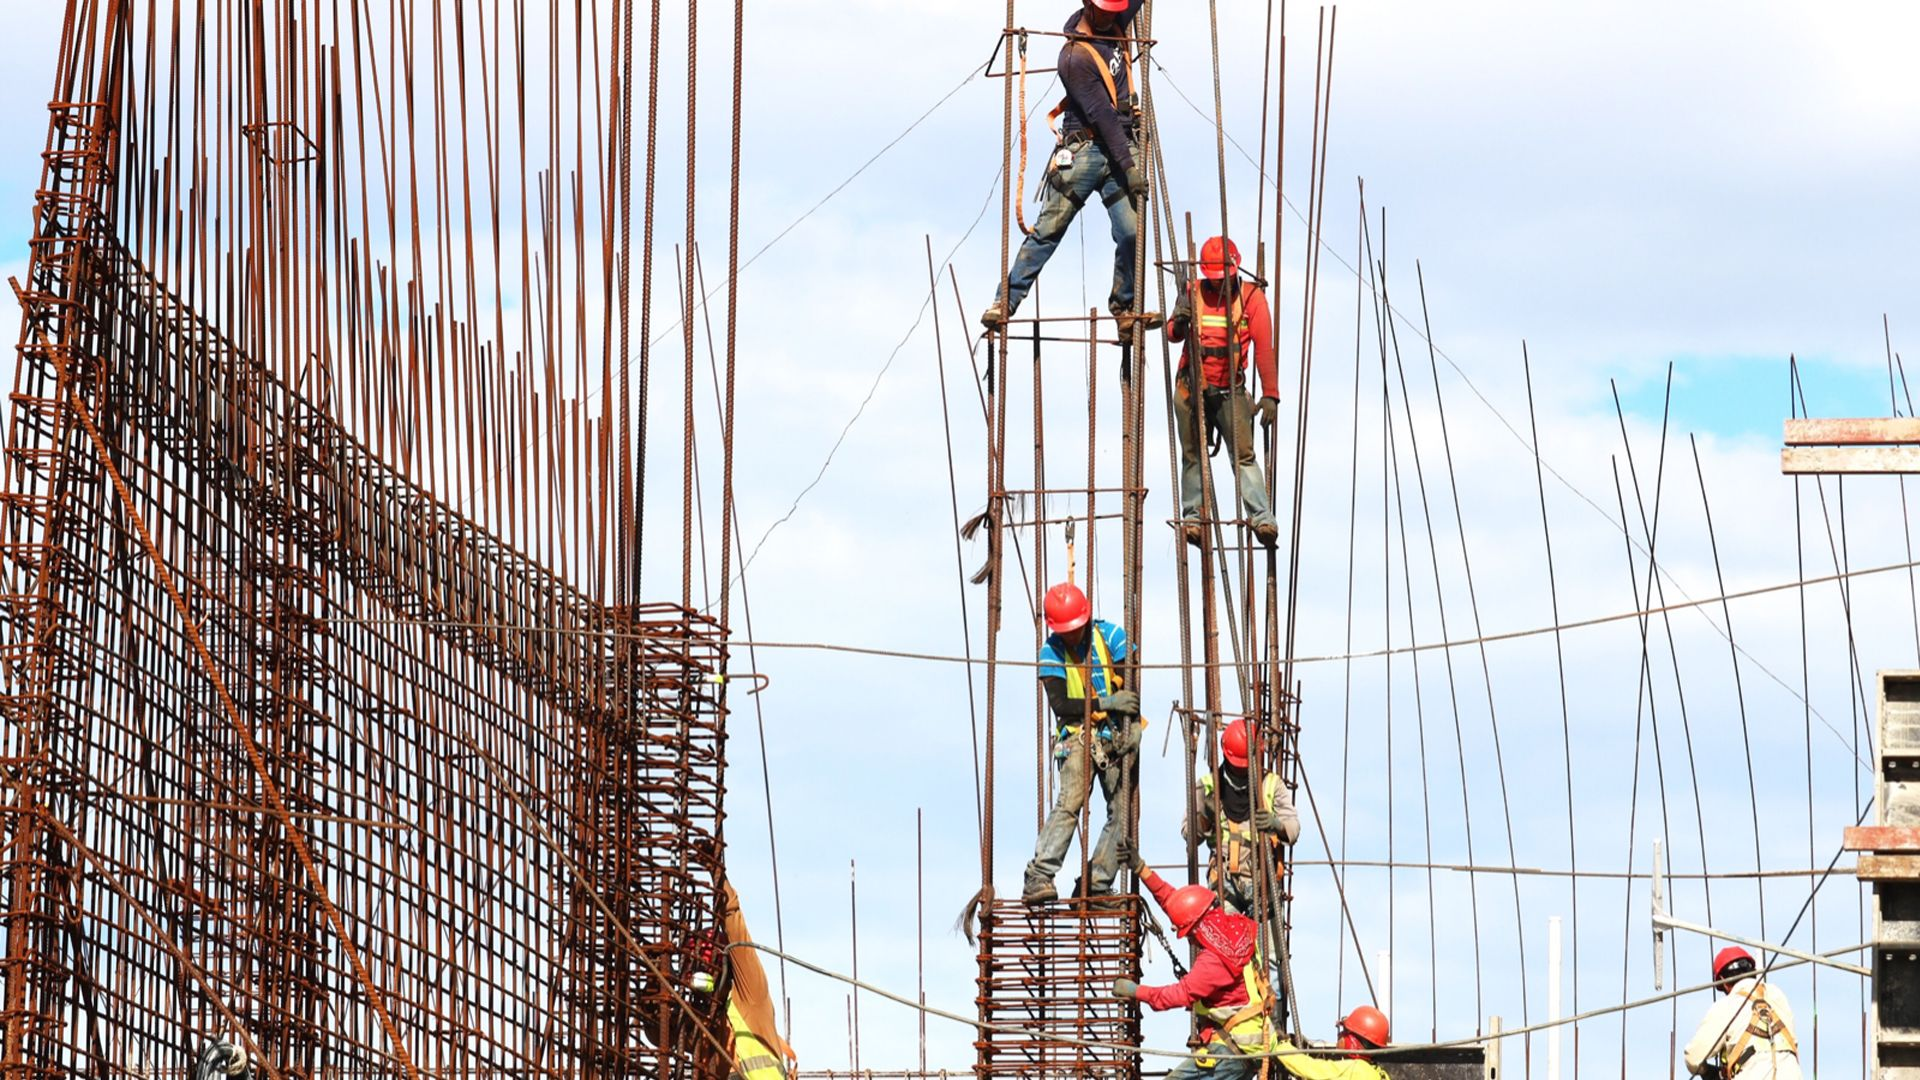 Asia Pacific Hotel Construction Up 27.0% in July